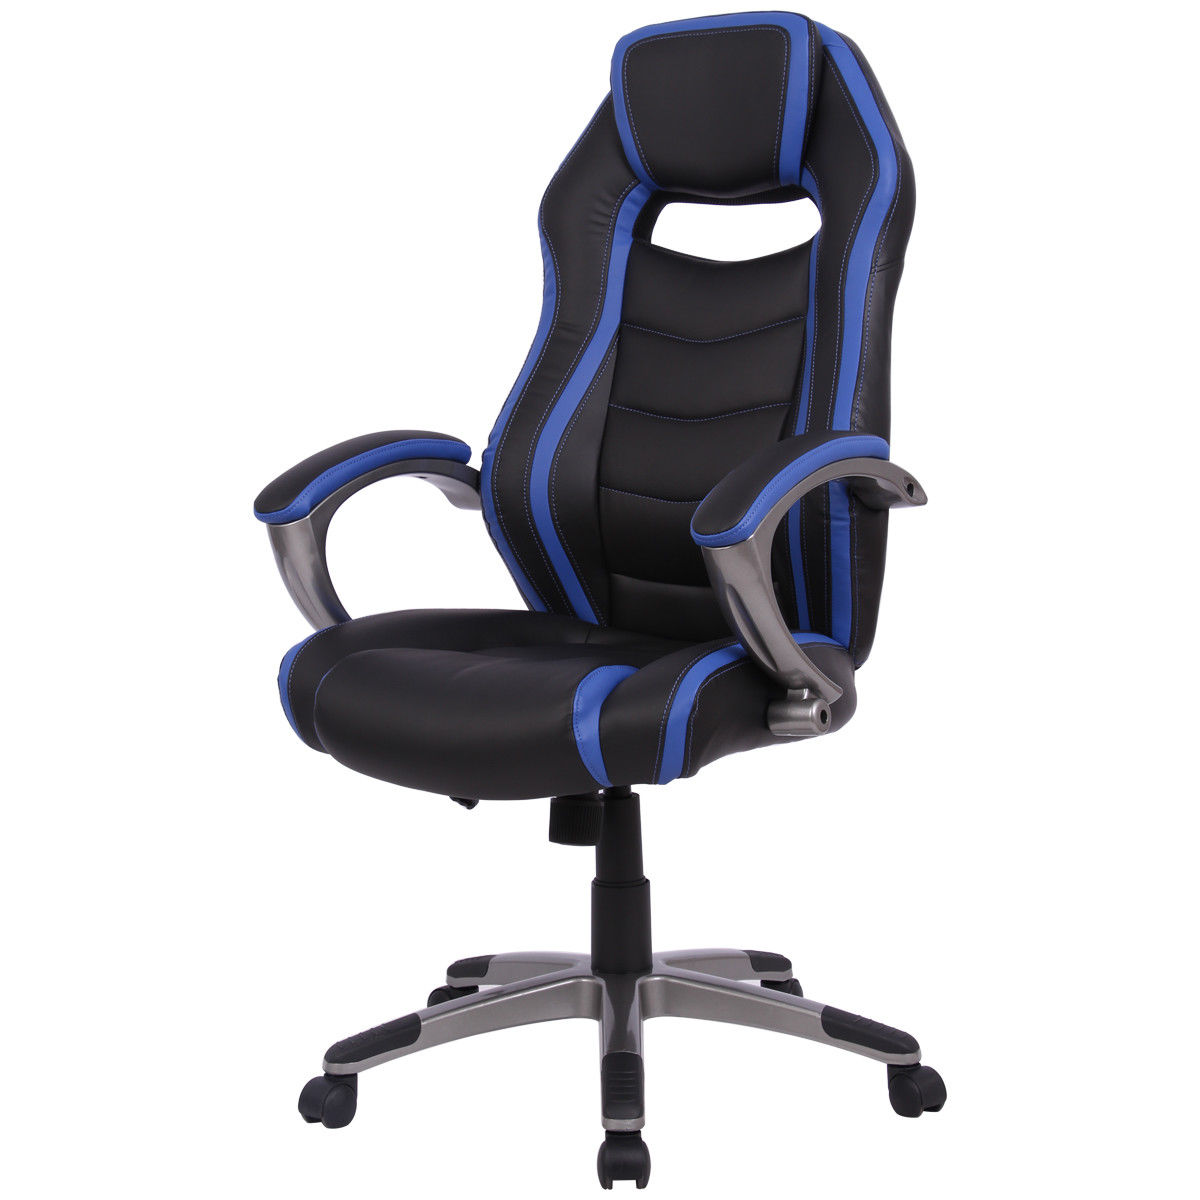 Giantex Racing Car Style High Back Gaming Chair Modern Bucket Seat Computer Desk Office Chair Swivel Office Furniture HW56143BL 240340 high quality back pillow office chair 3d handrail function computer household ergonomic chair 360 degree rotating seat